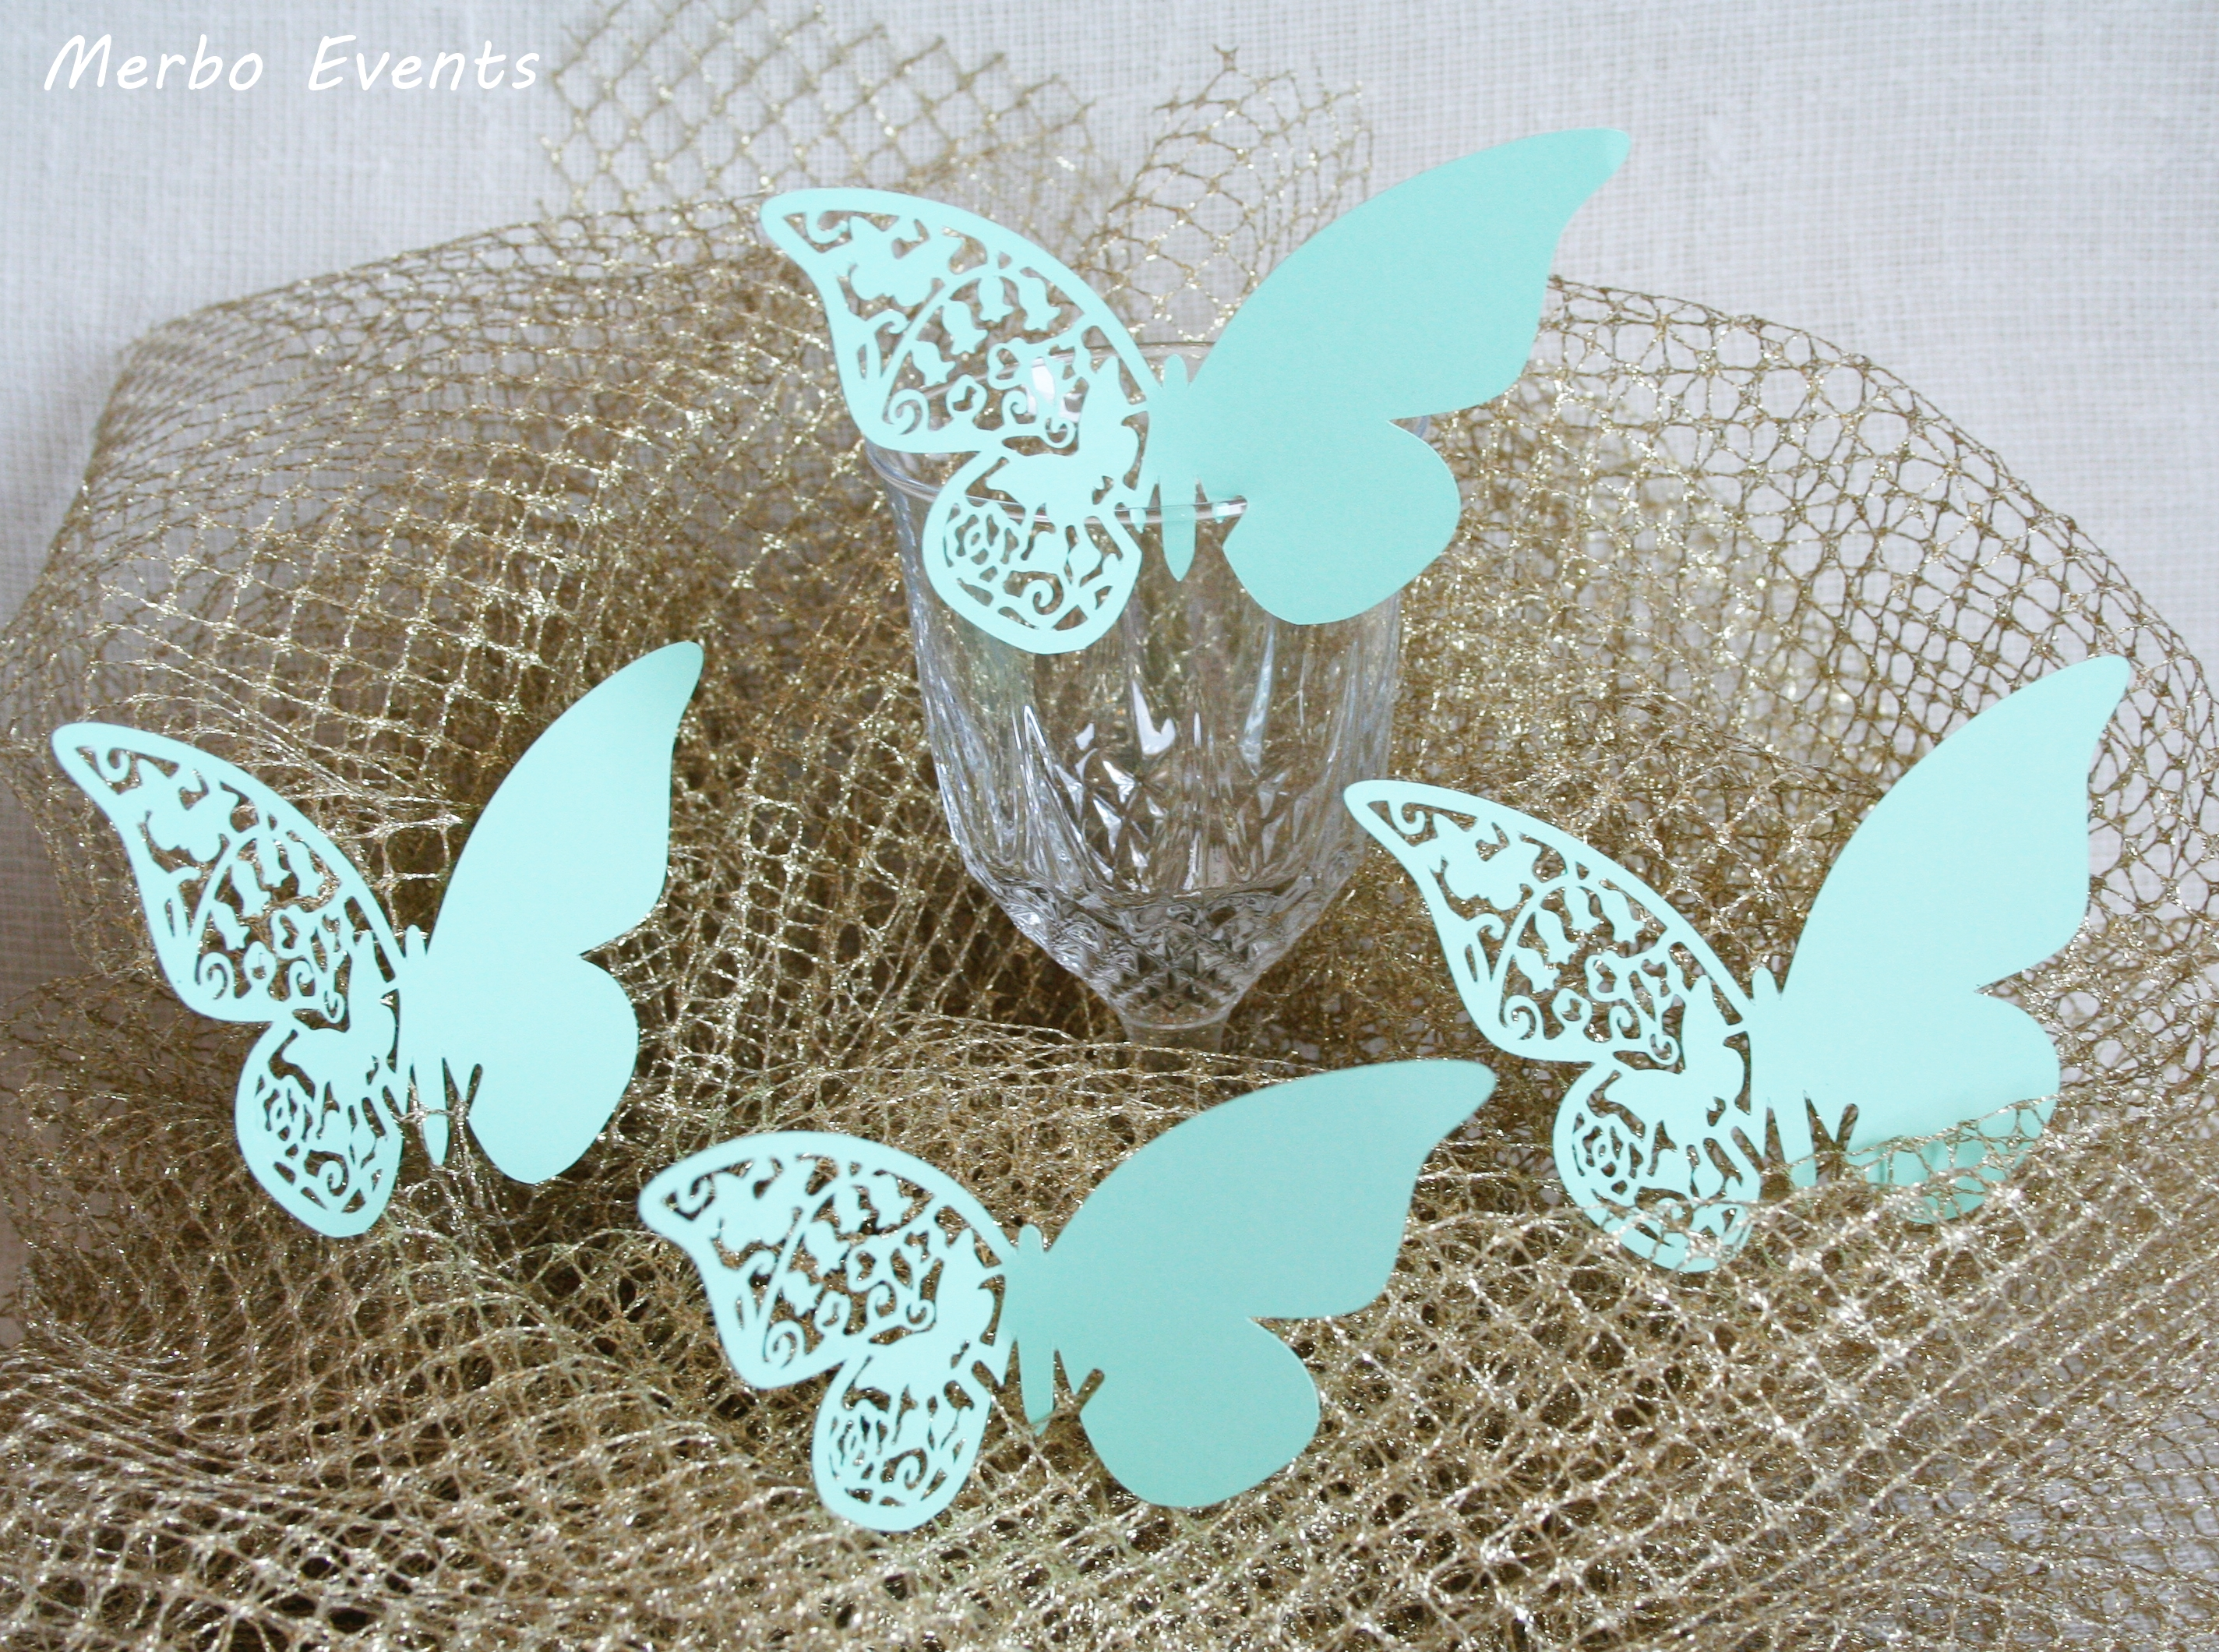 Mariposas para copas boda Merbo Events